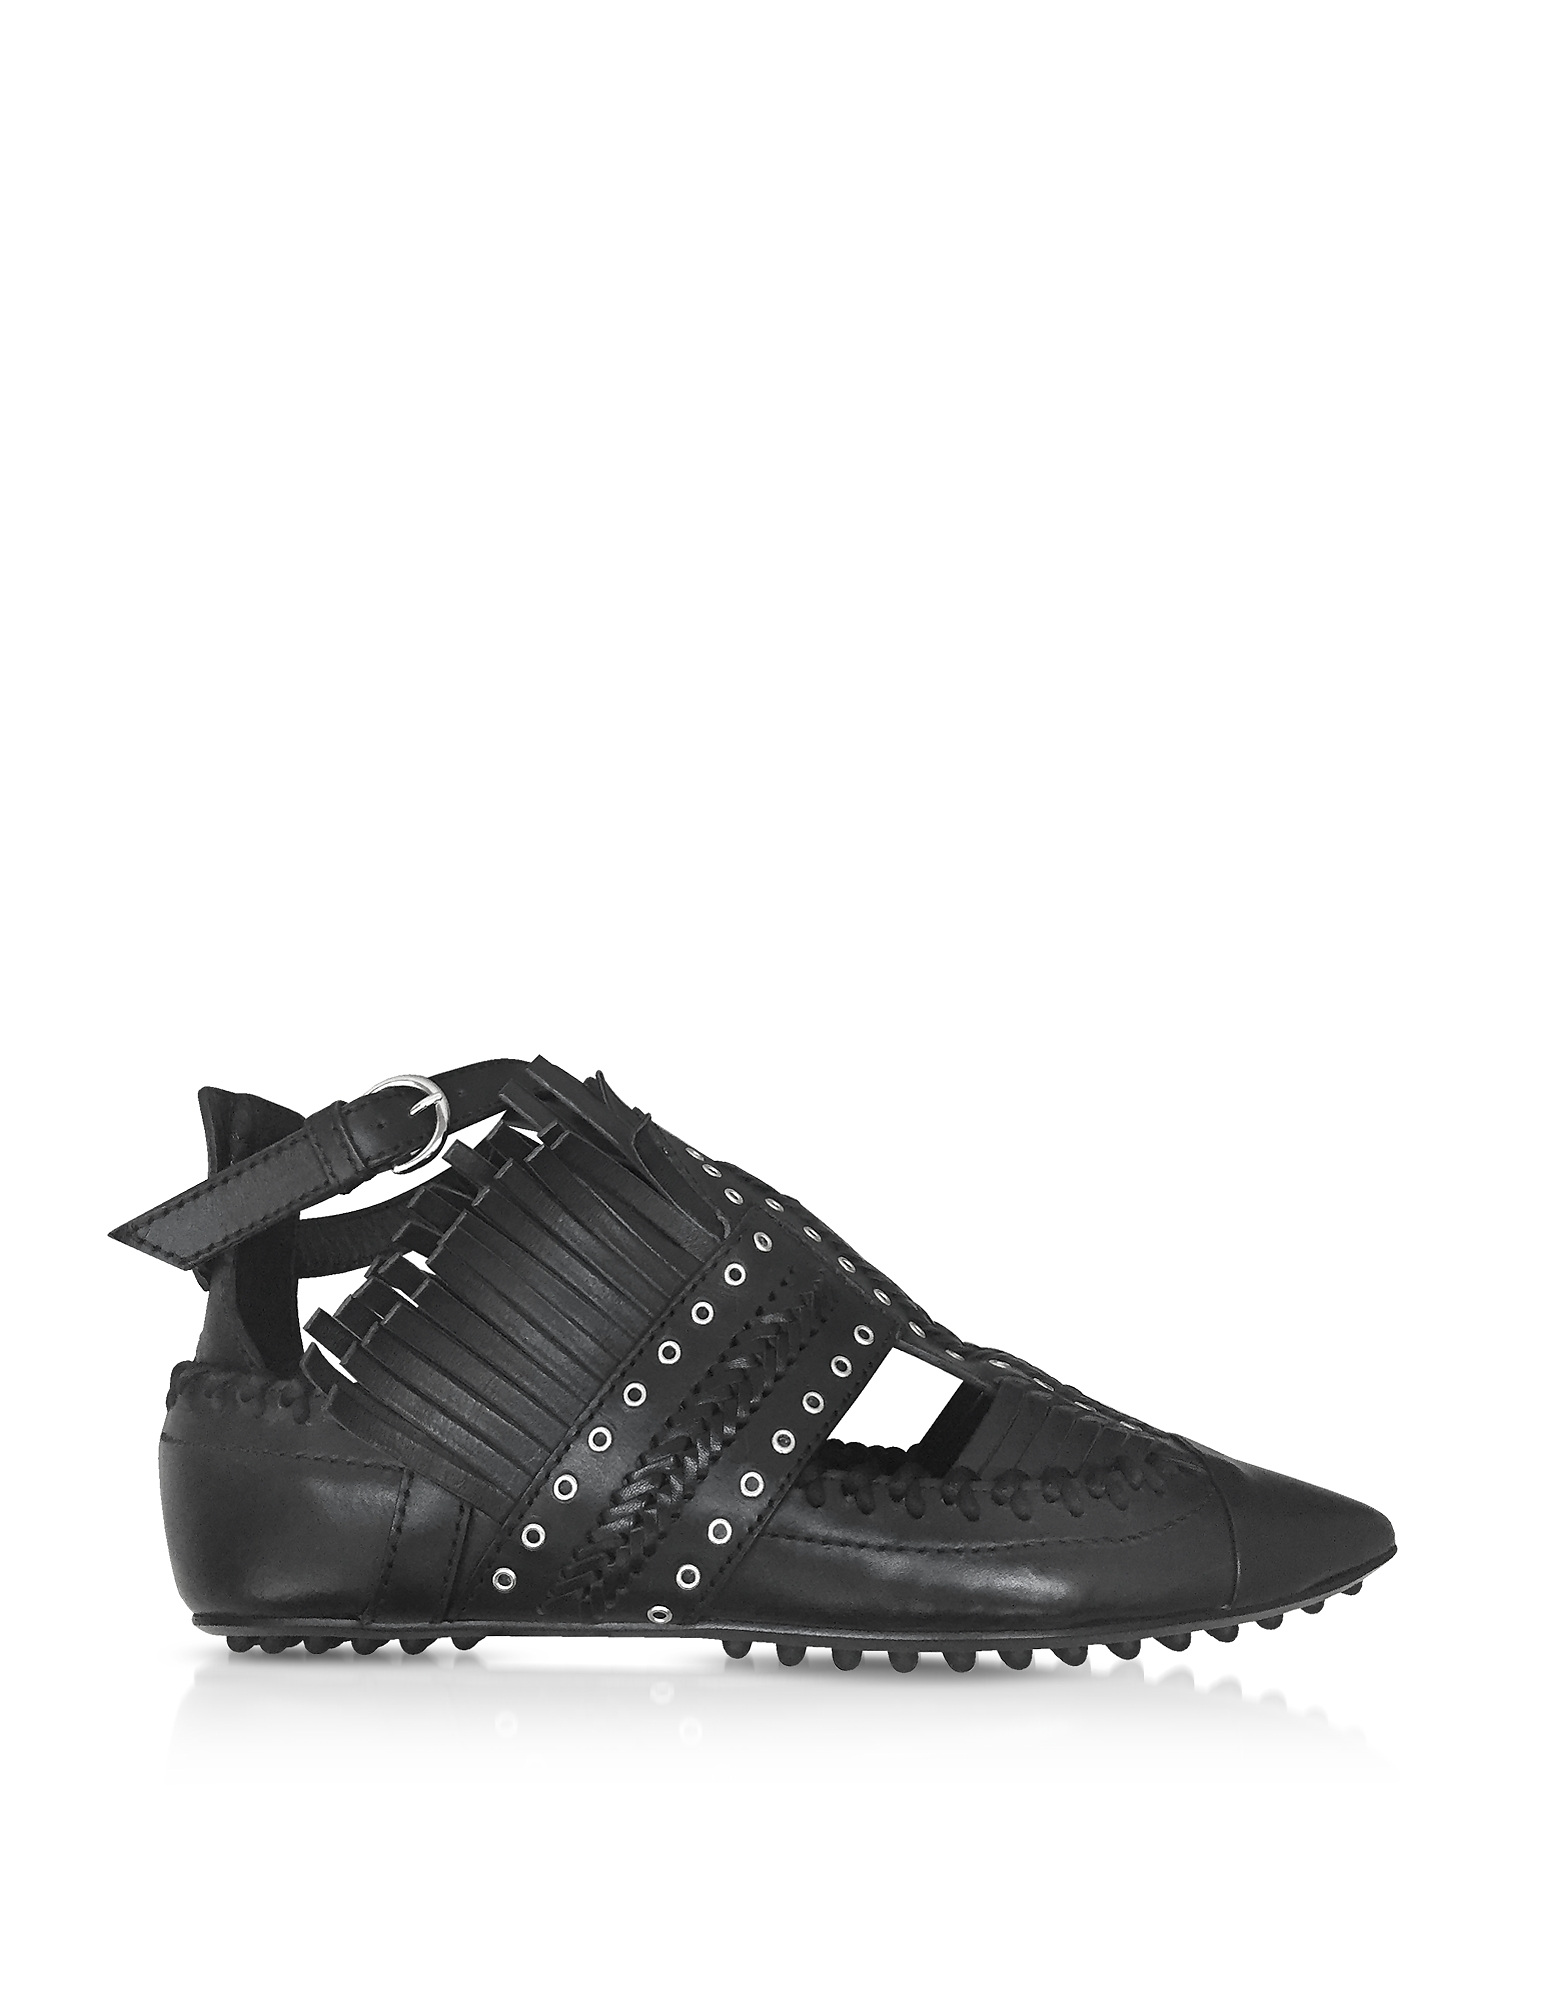 Carven Shoes, Black Fringed Leather Flat Ballerinas